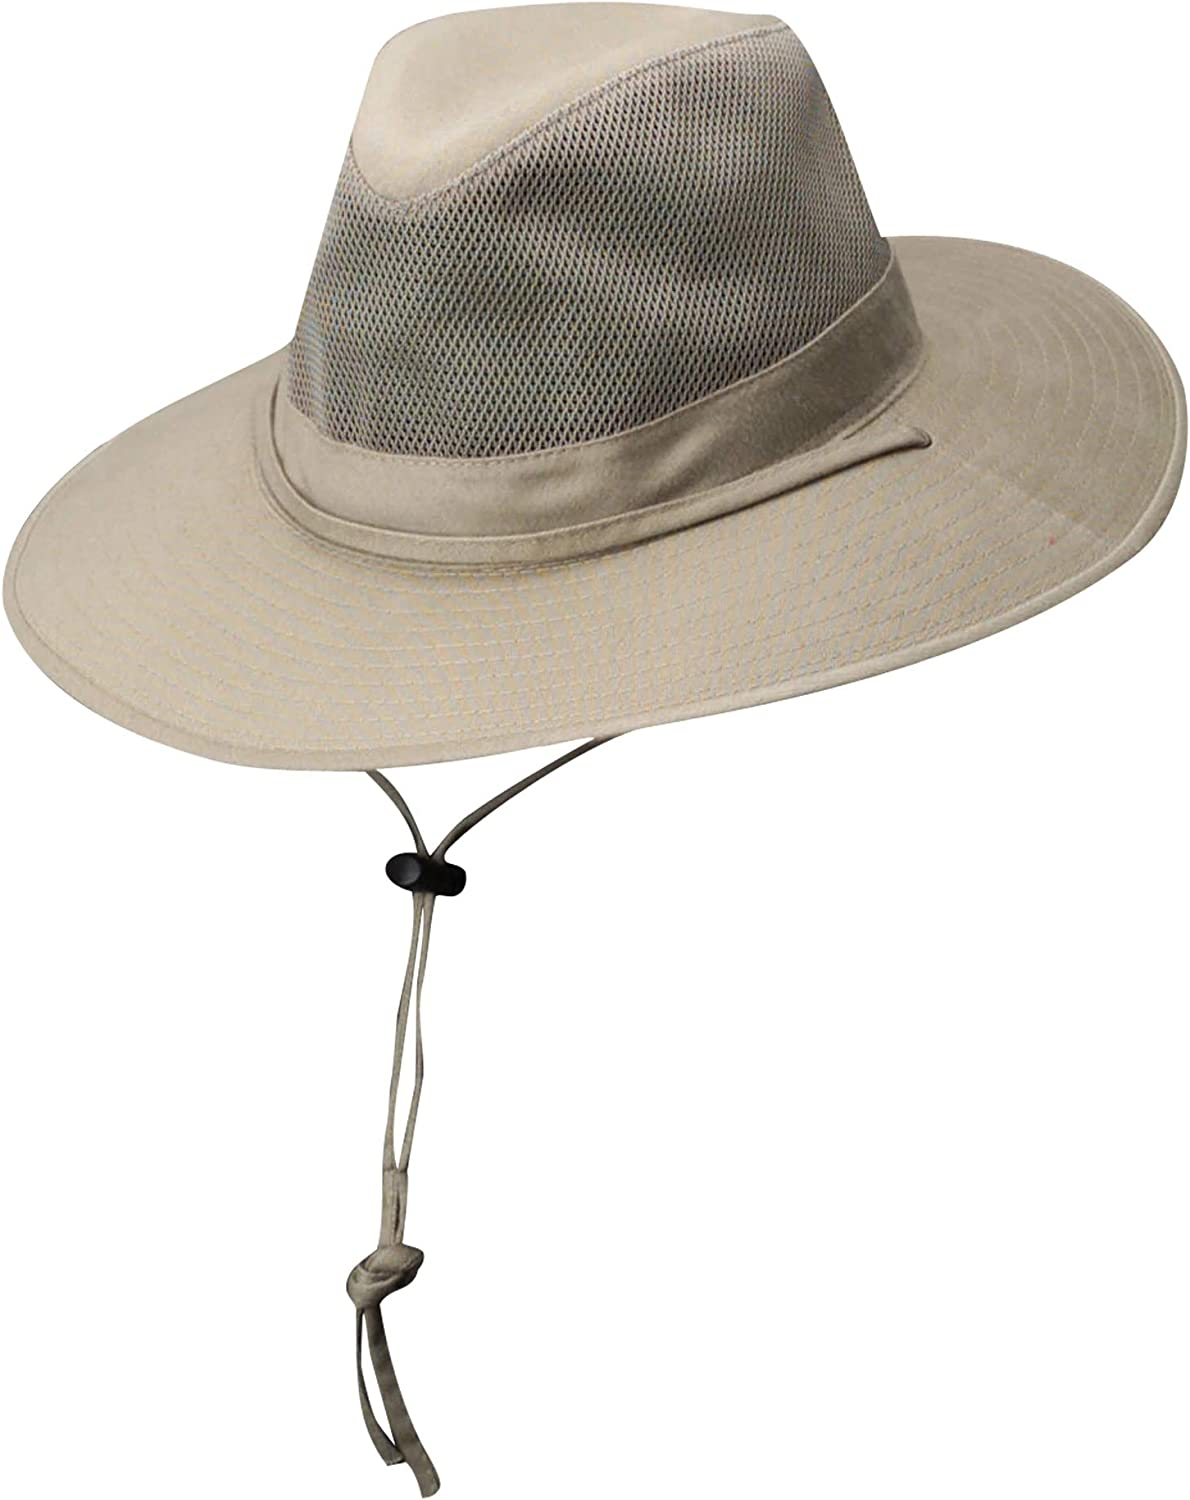 DPC Outdoors Solarweave Treated Hat New Shipping Free Cotton Deluxe